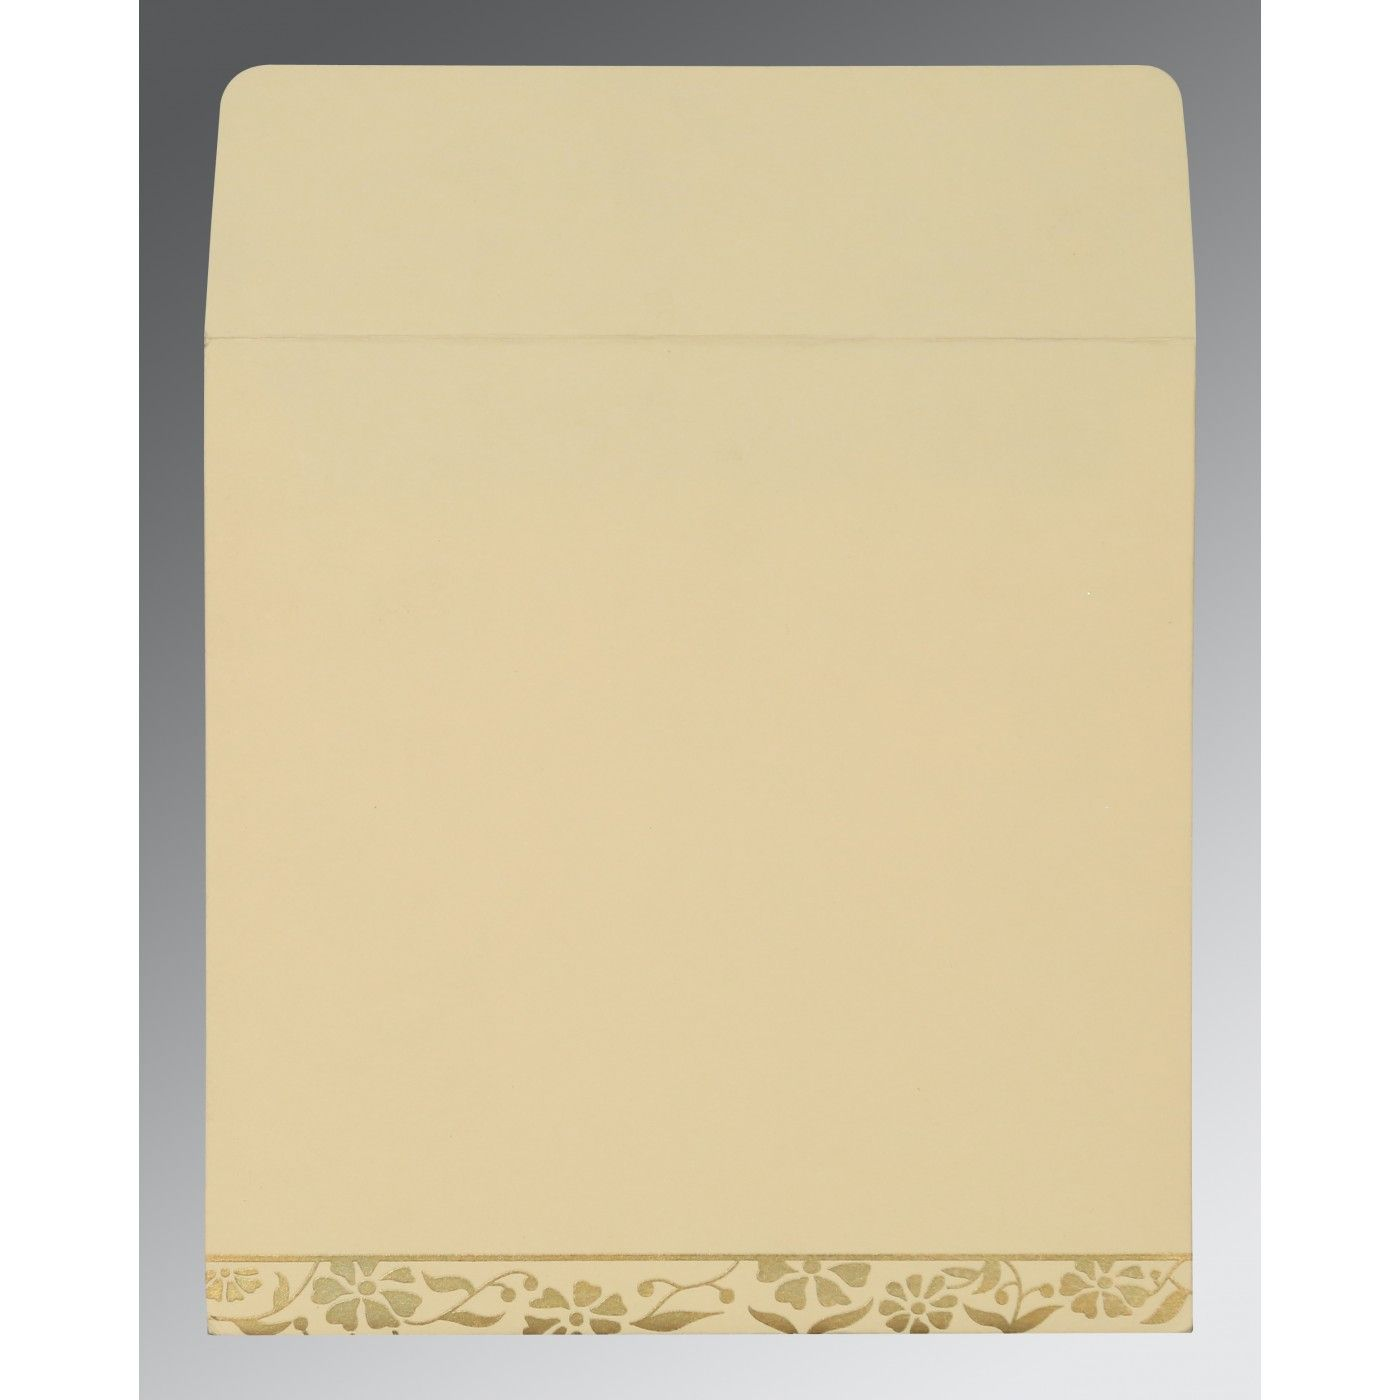 OFF-WHITE MATTE FLORAL THEMED - SCREEN PRINTED WEDDING CARD : CI-8222I - IndianWeddingCards